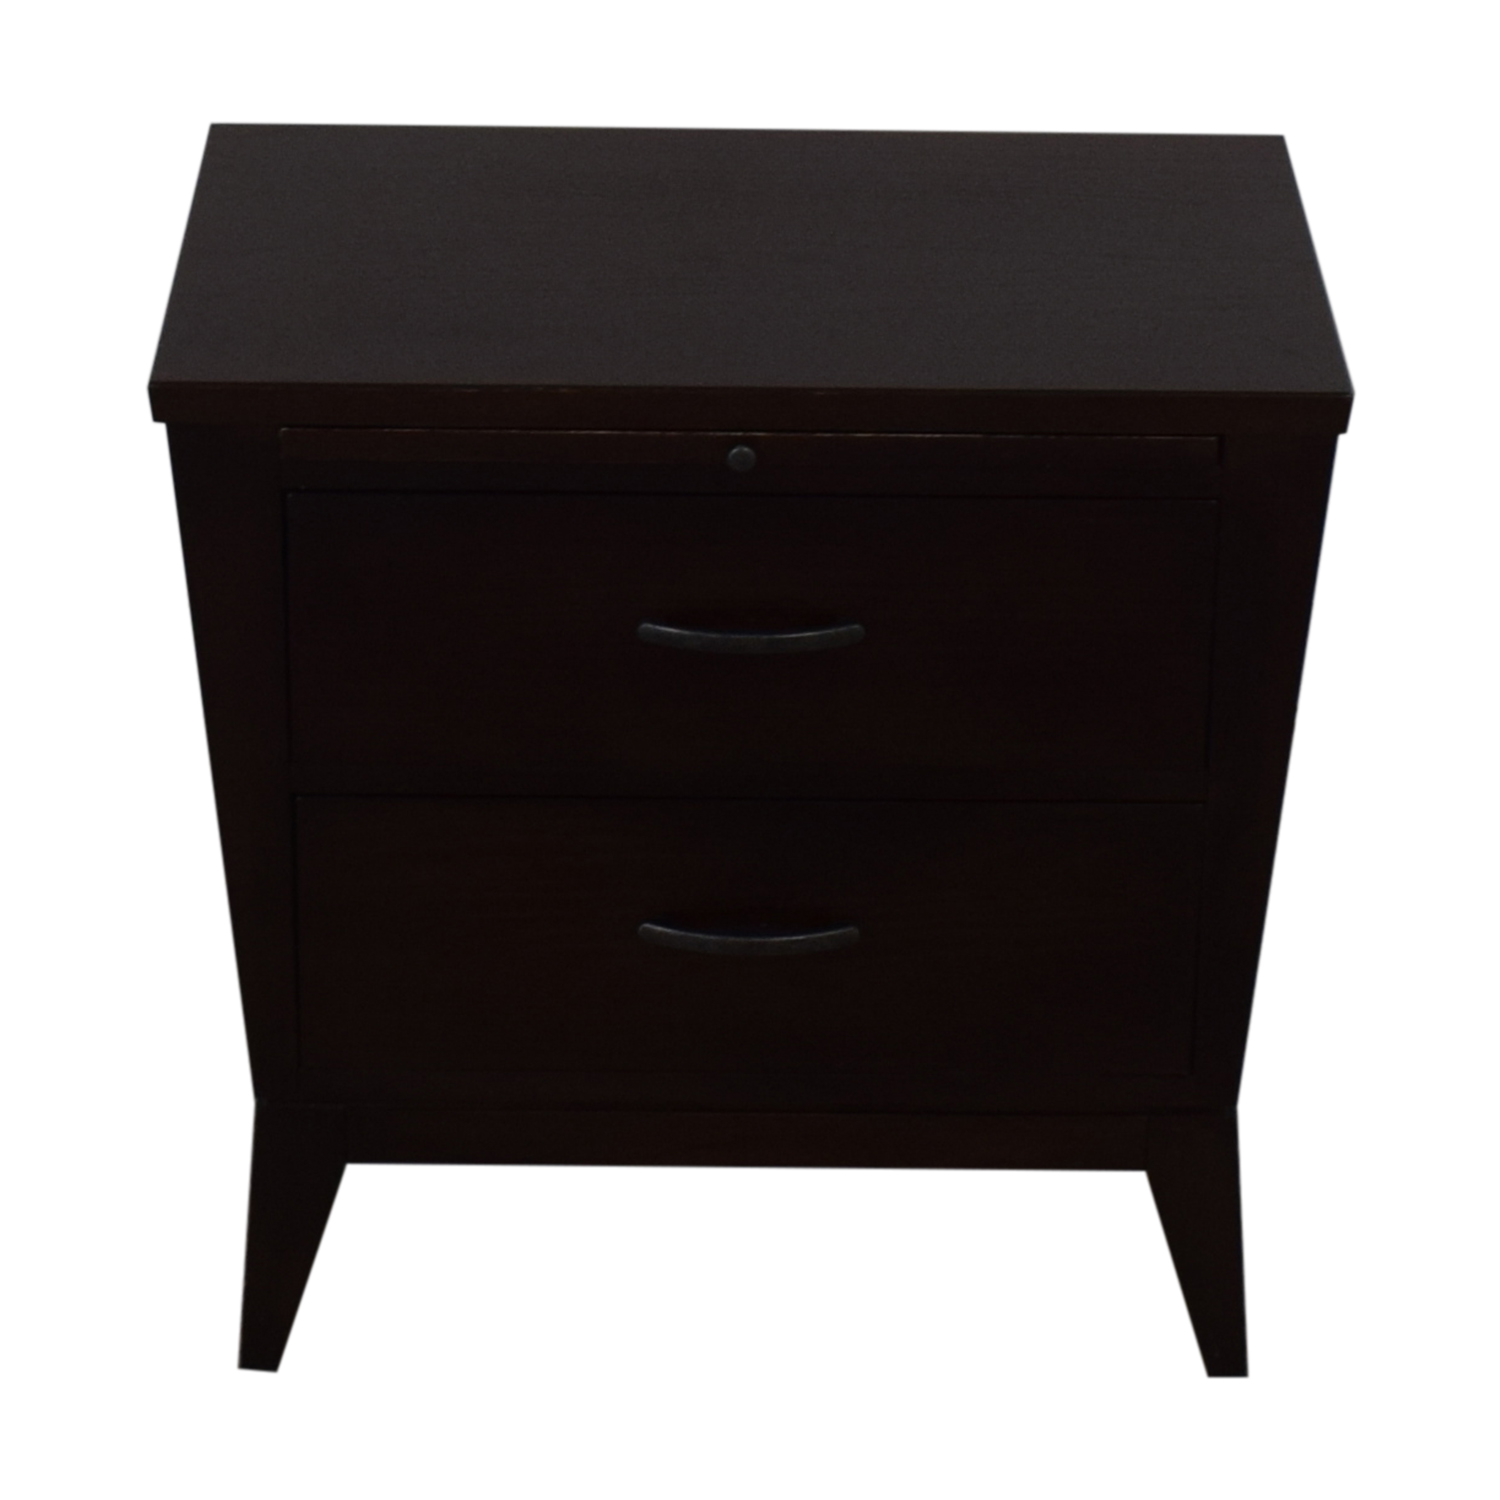 Ethan Allen Ethan Allen Nightstand with Drawers nyc